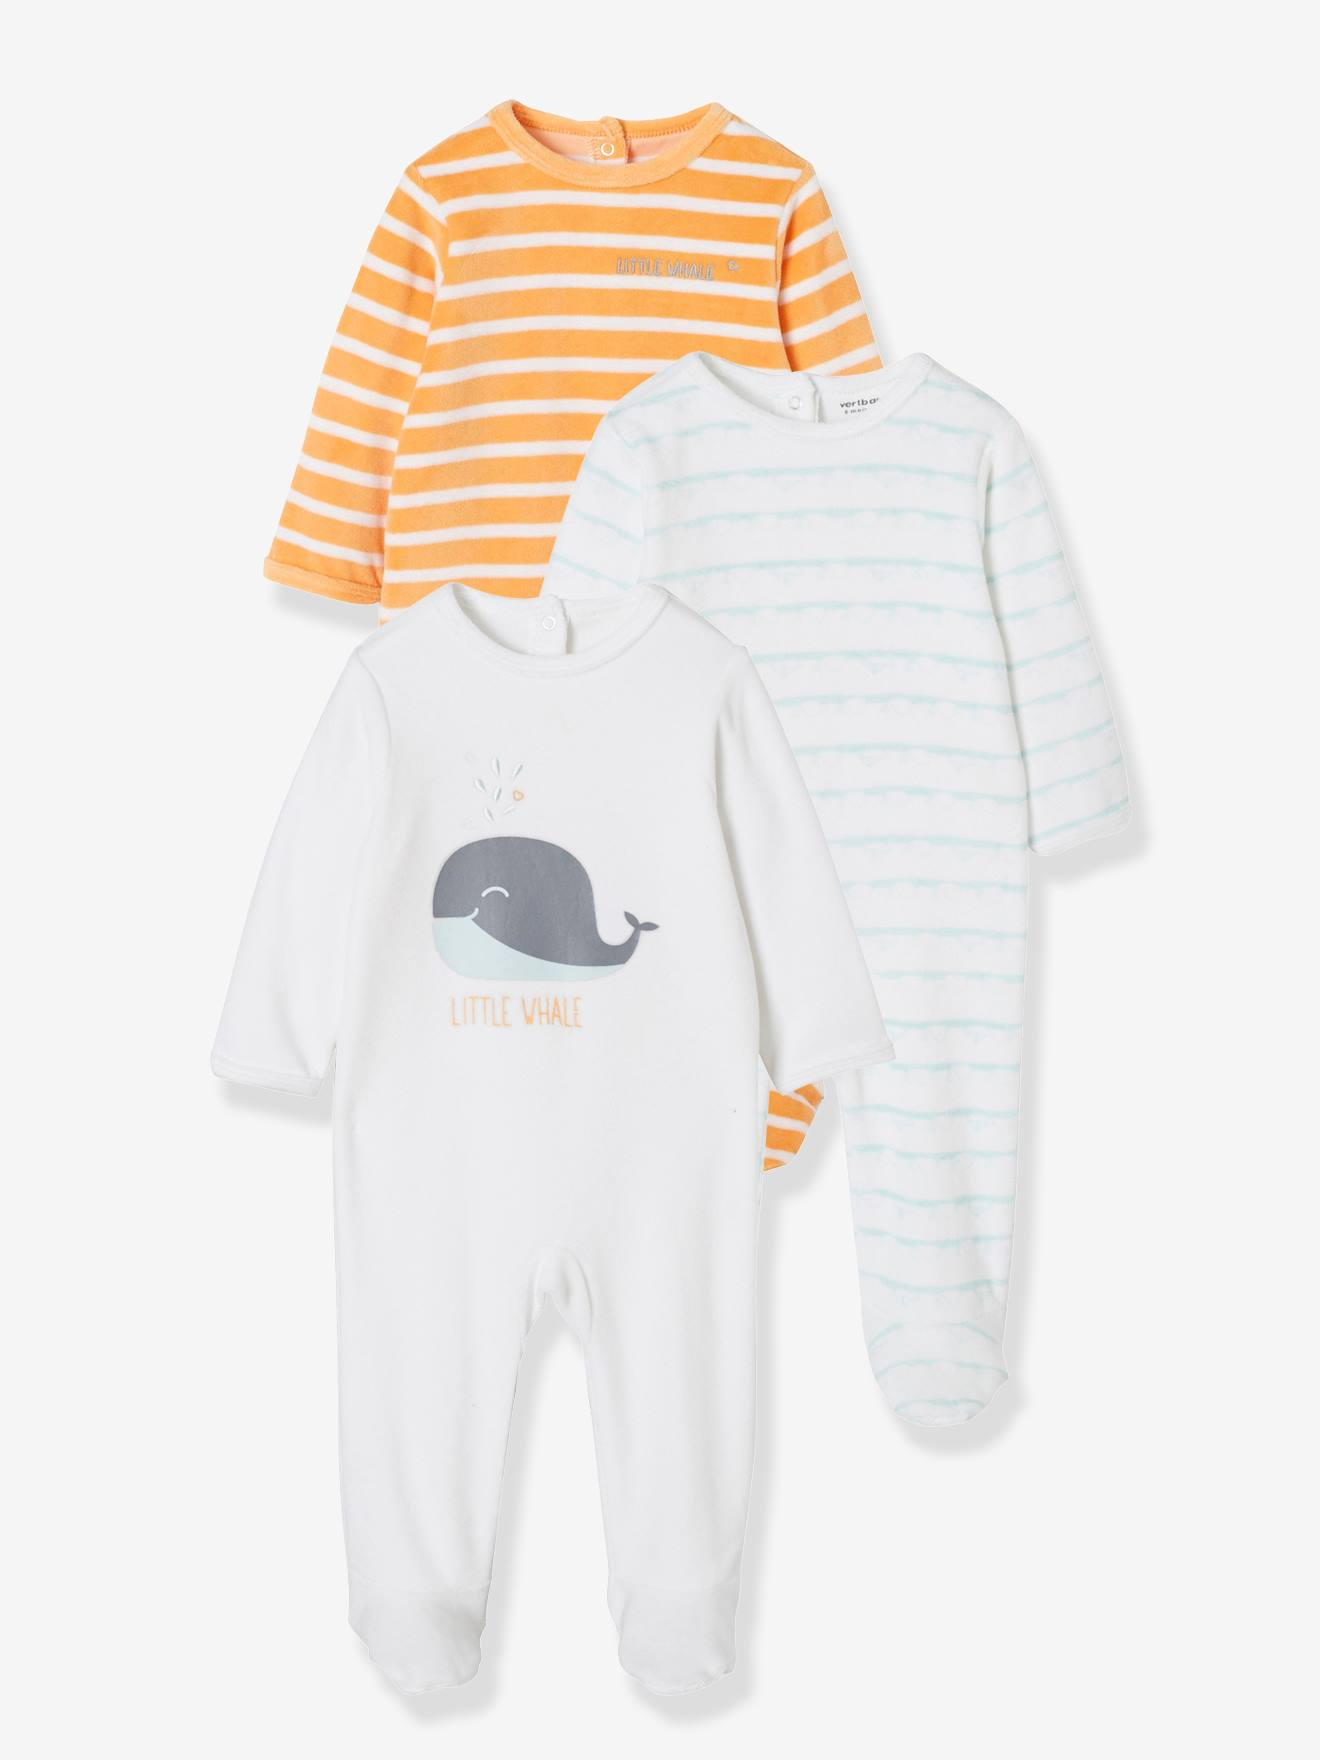 Boys Vertbaudet Babygrow 3 Months At Any Cost One-pieces Clothing, Shoes & Accessories